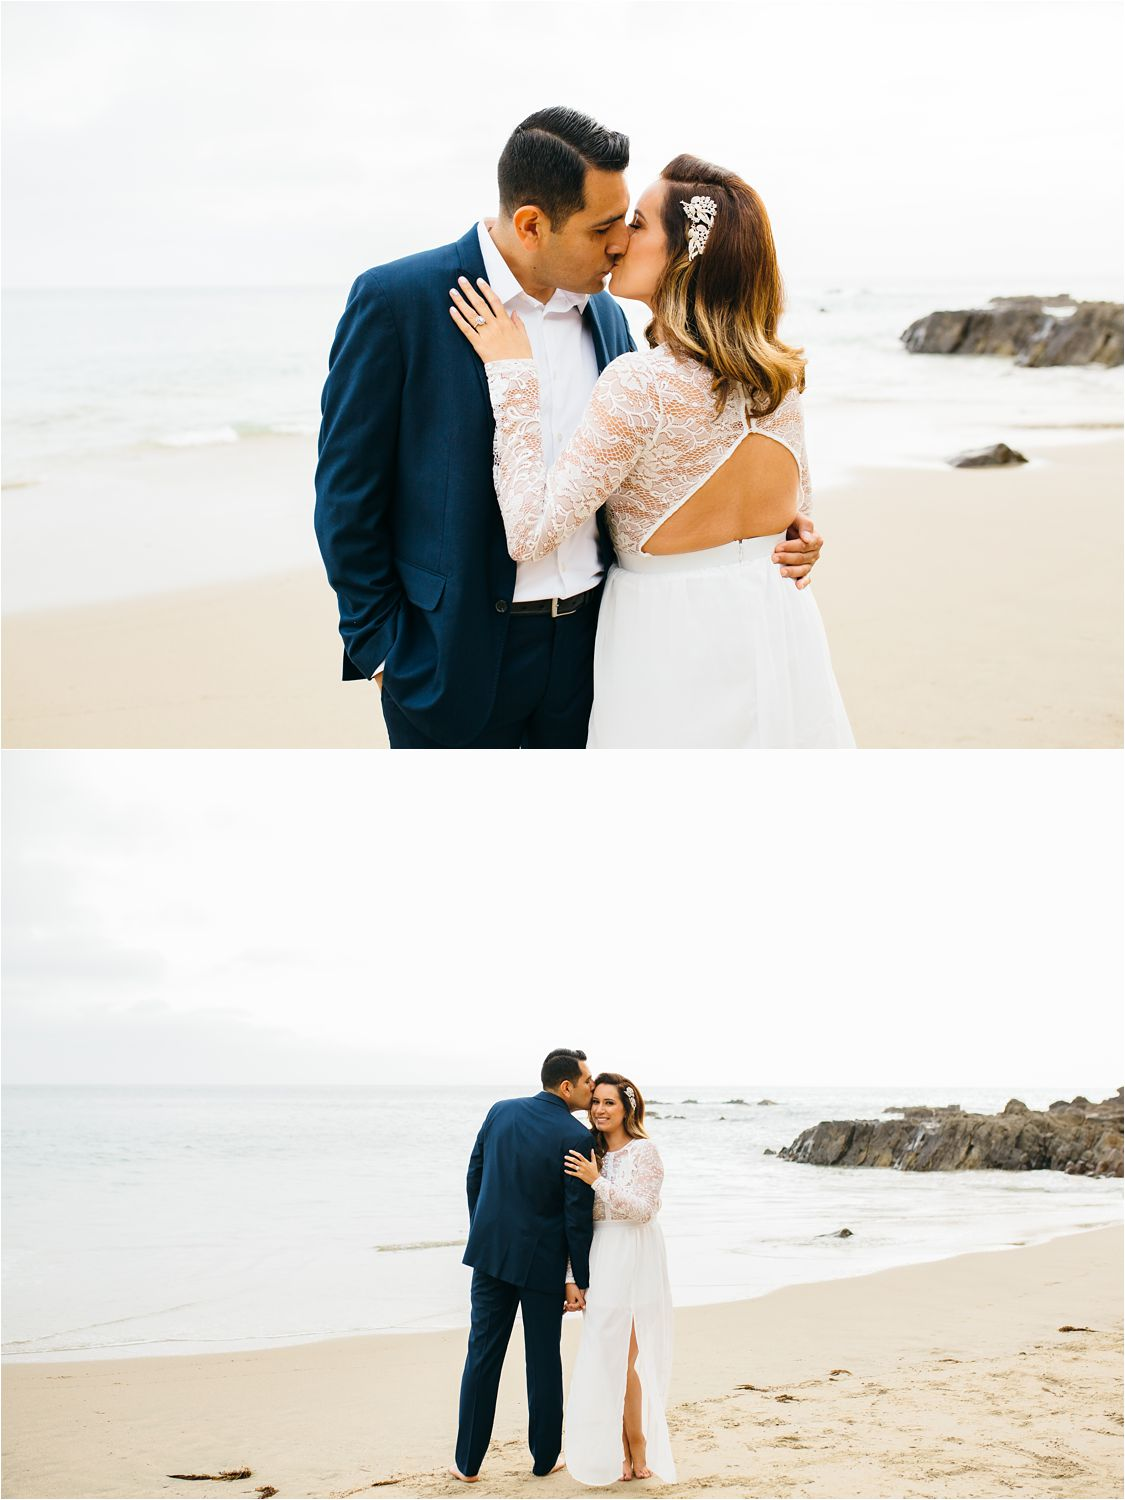 Beach Engagement Photography in Orange County